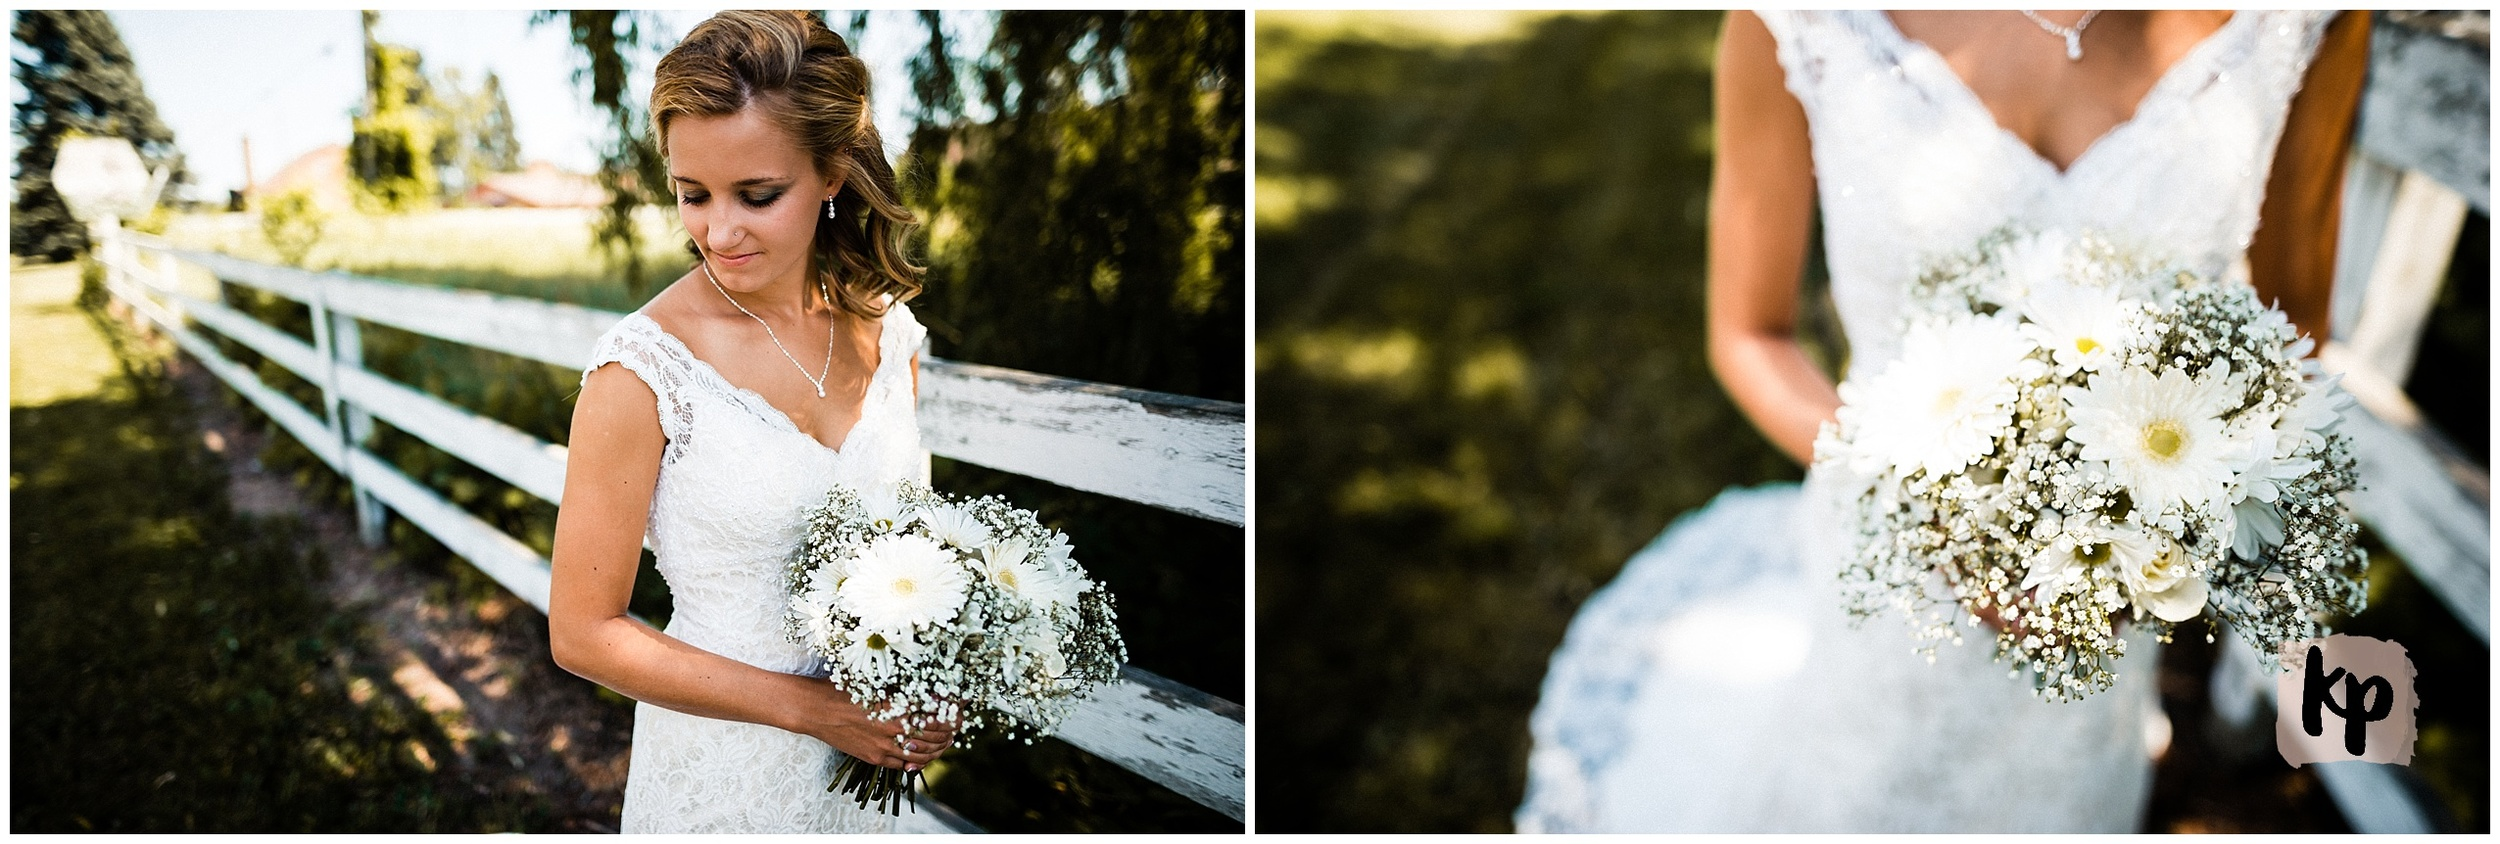 Andrew + Jessica | Just Married #kyleepaigephotography_0152.jpg